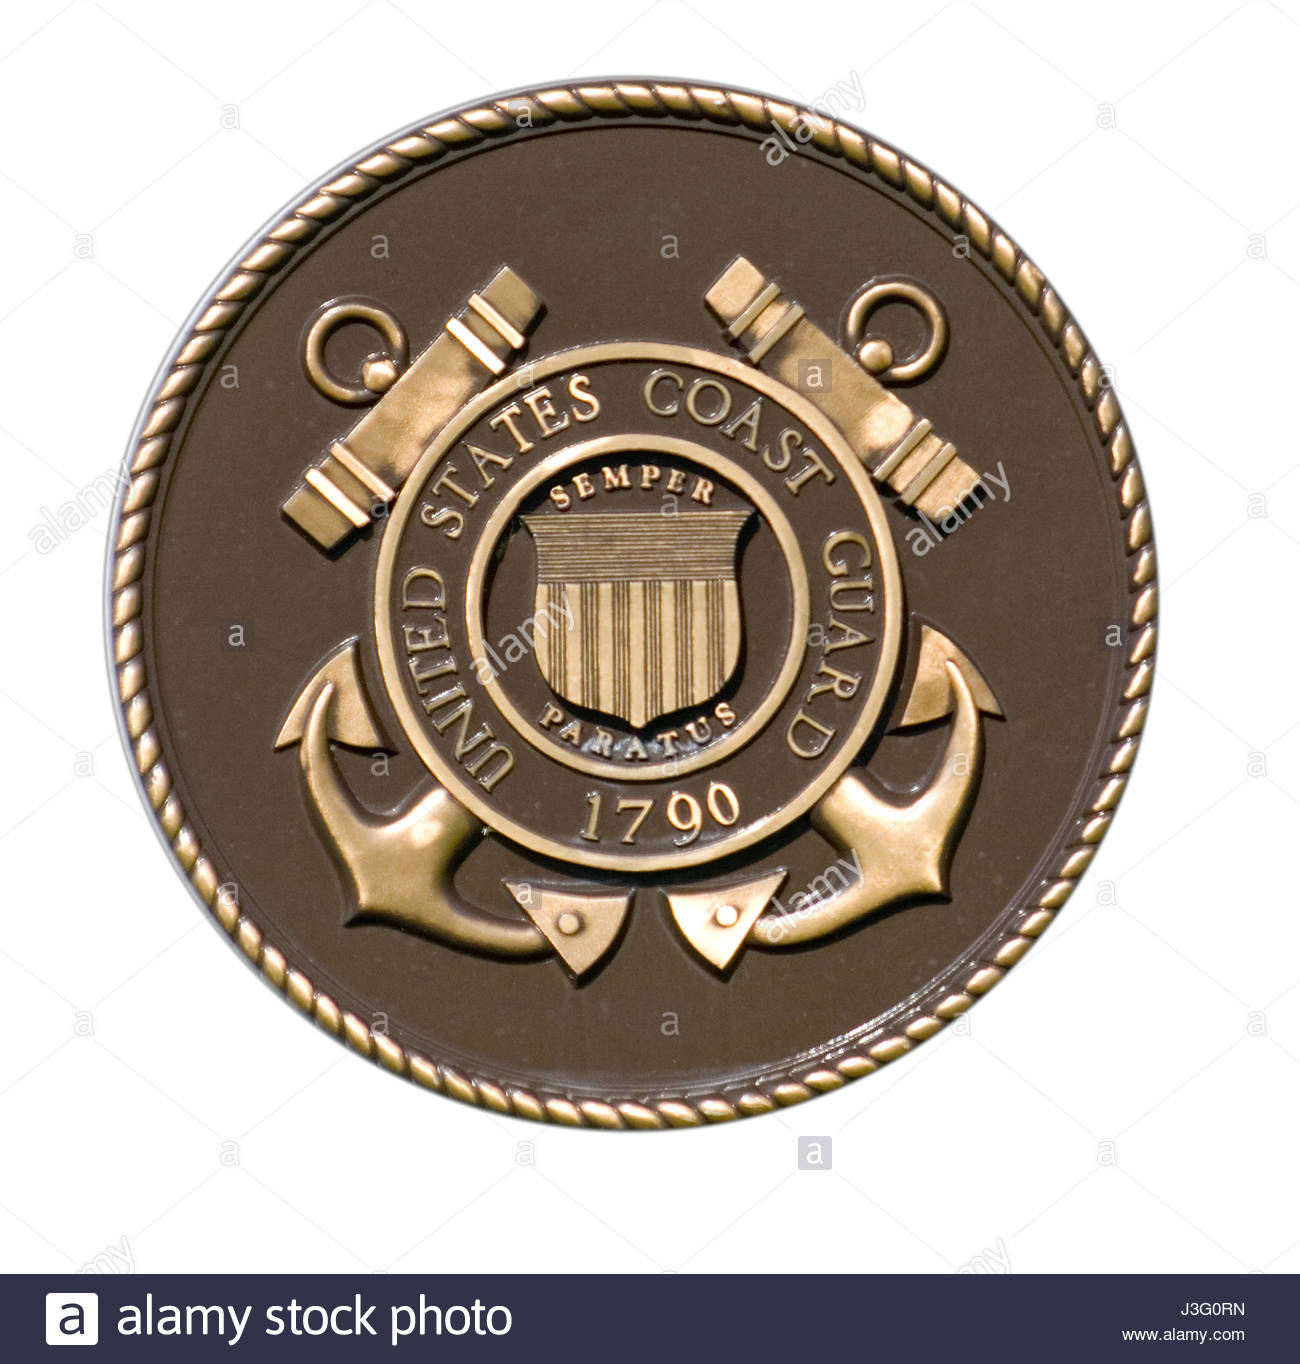 The seal of the United States Coast Guard. National Memorial Cemetery of the Pacific at Punchbowl, Honolulu, Oahu, - Stock Image